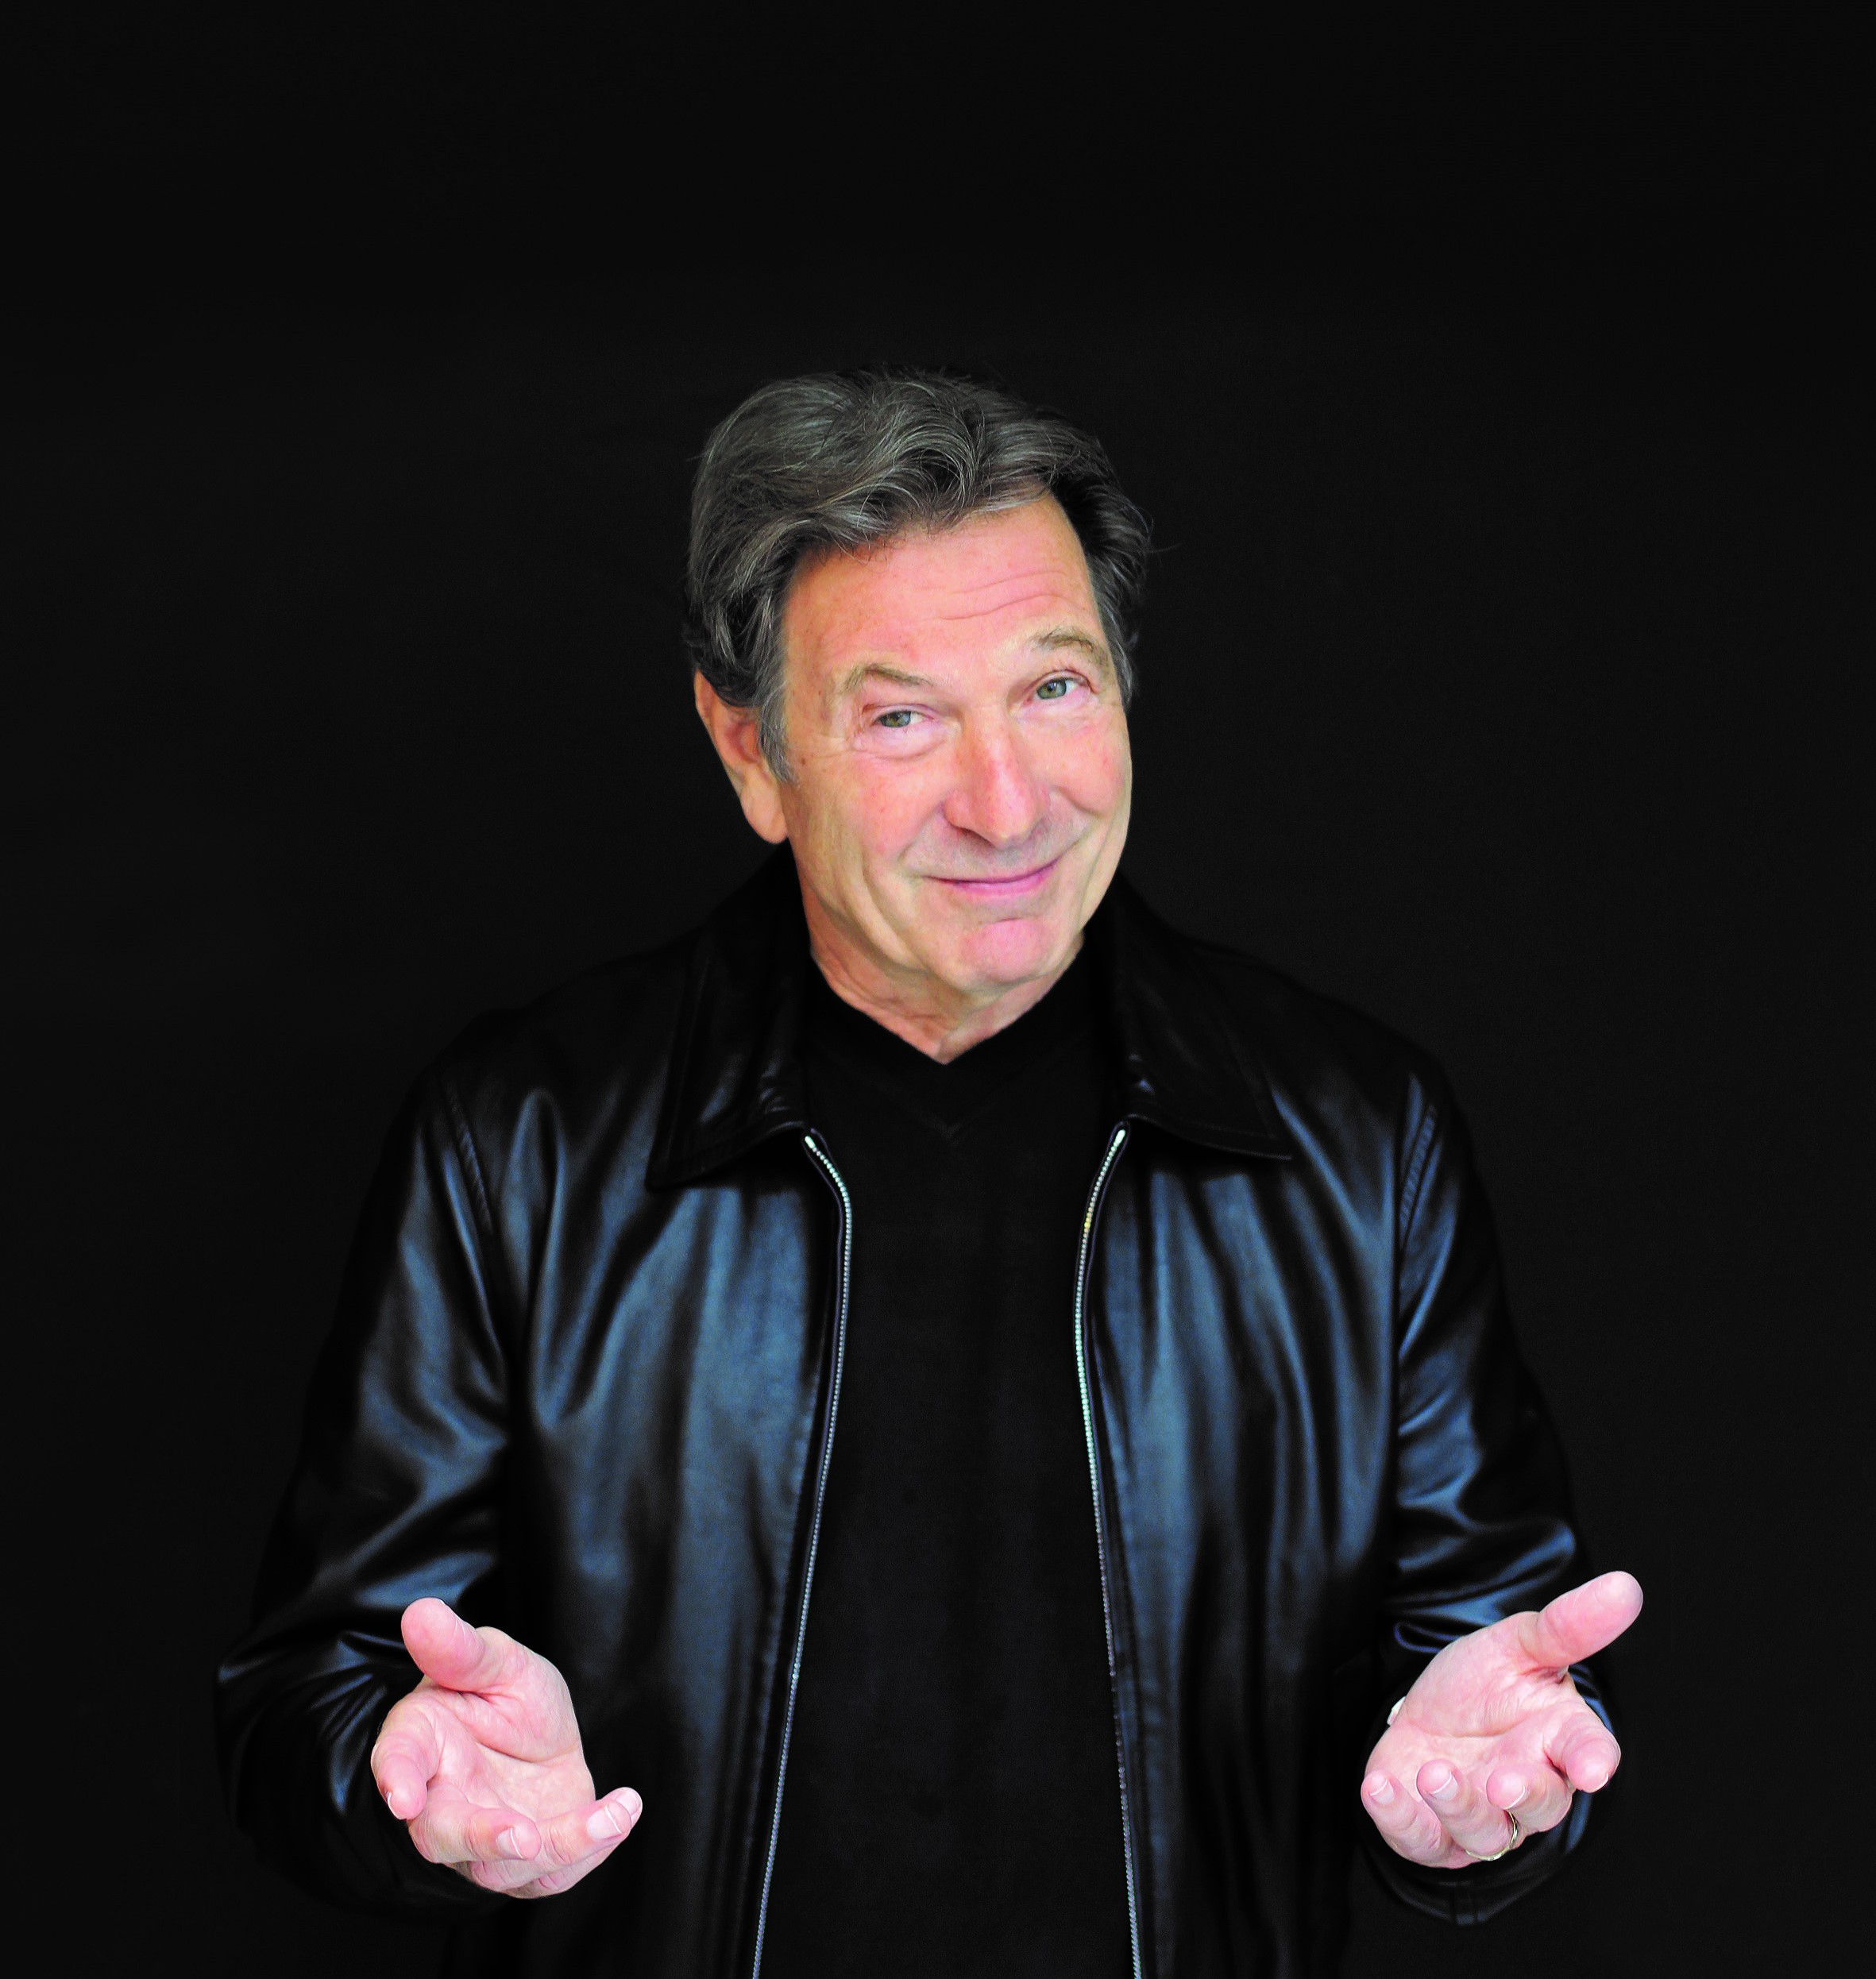 Michael Brandon brings his one--man show to Malvern Theatres